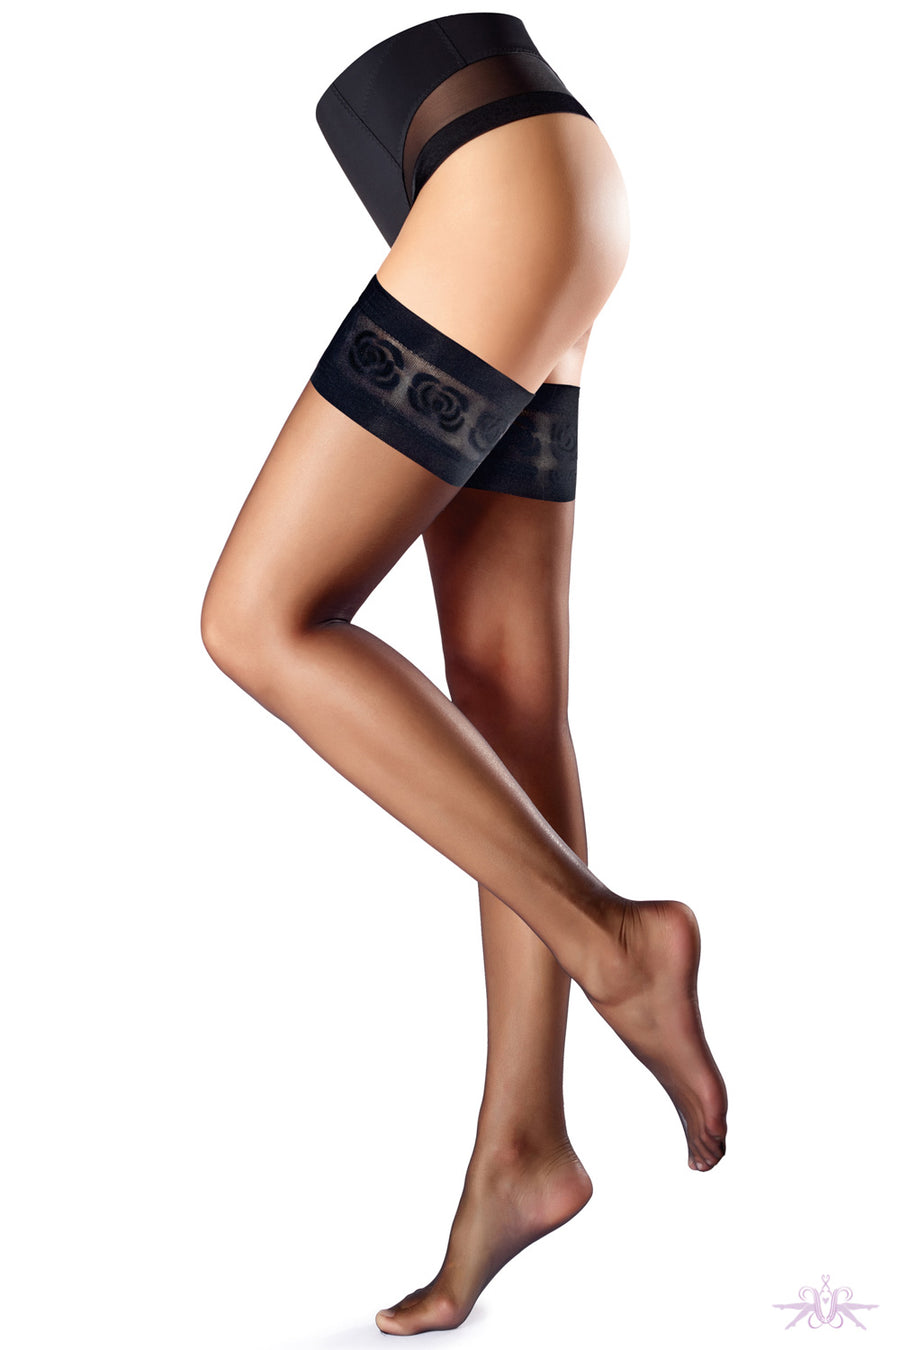 Oroblu Stylish Up 15 Hold Ups - Mayfair Stockings